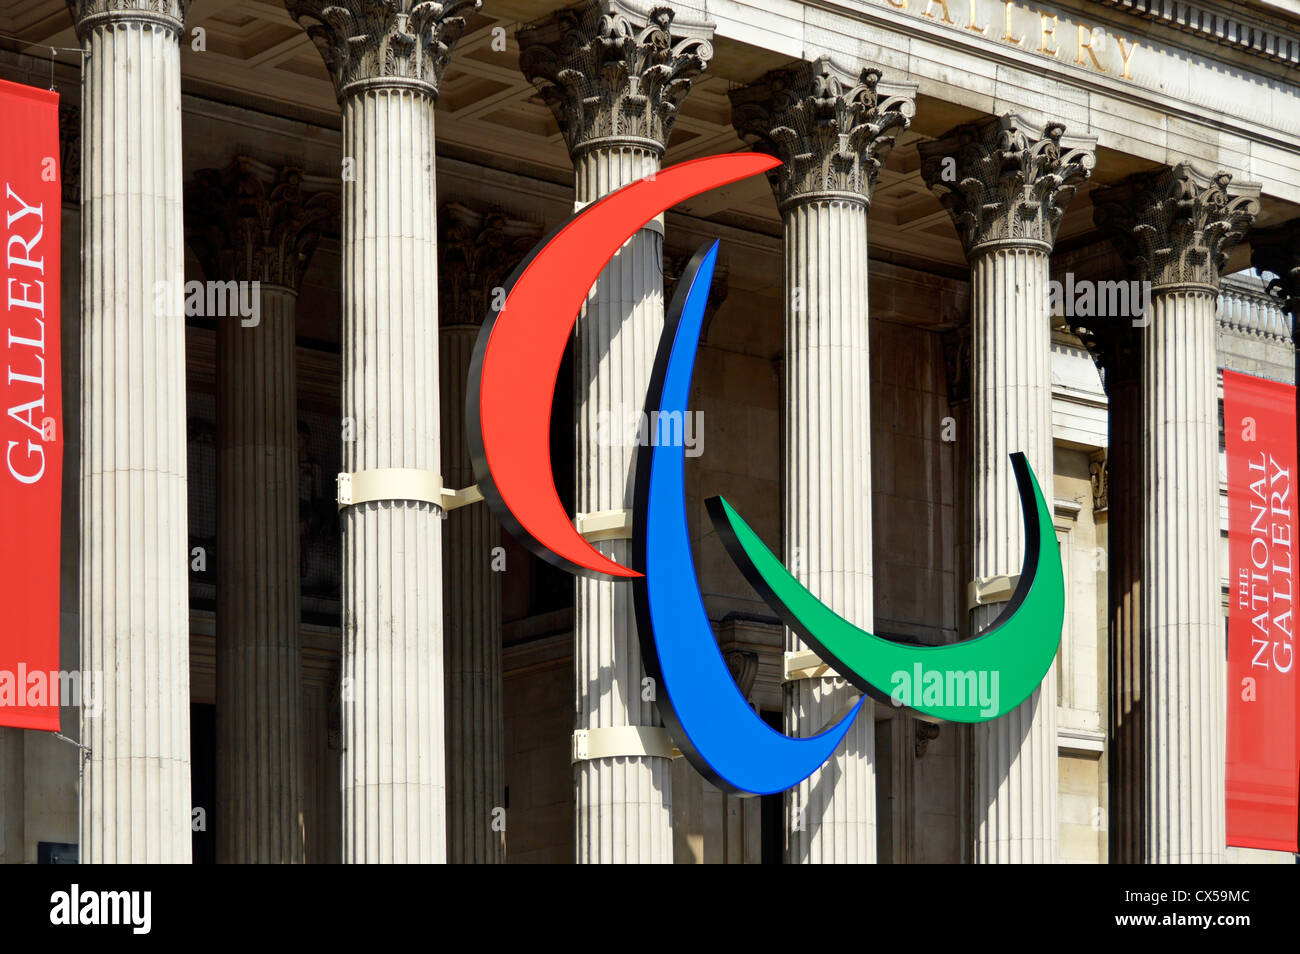 Paralympic logo mounted on the columns of the National Gallery in Trafalgar Square London England UK - Stock Image